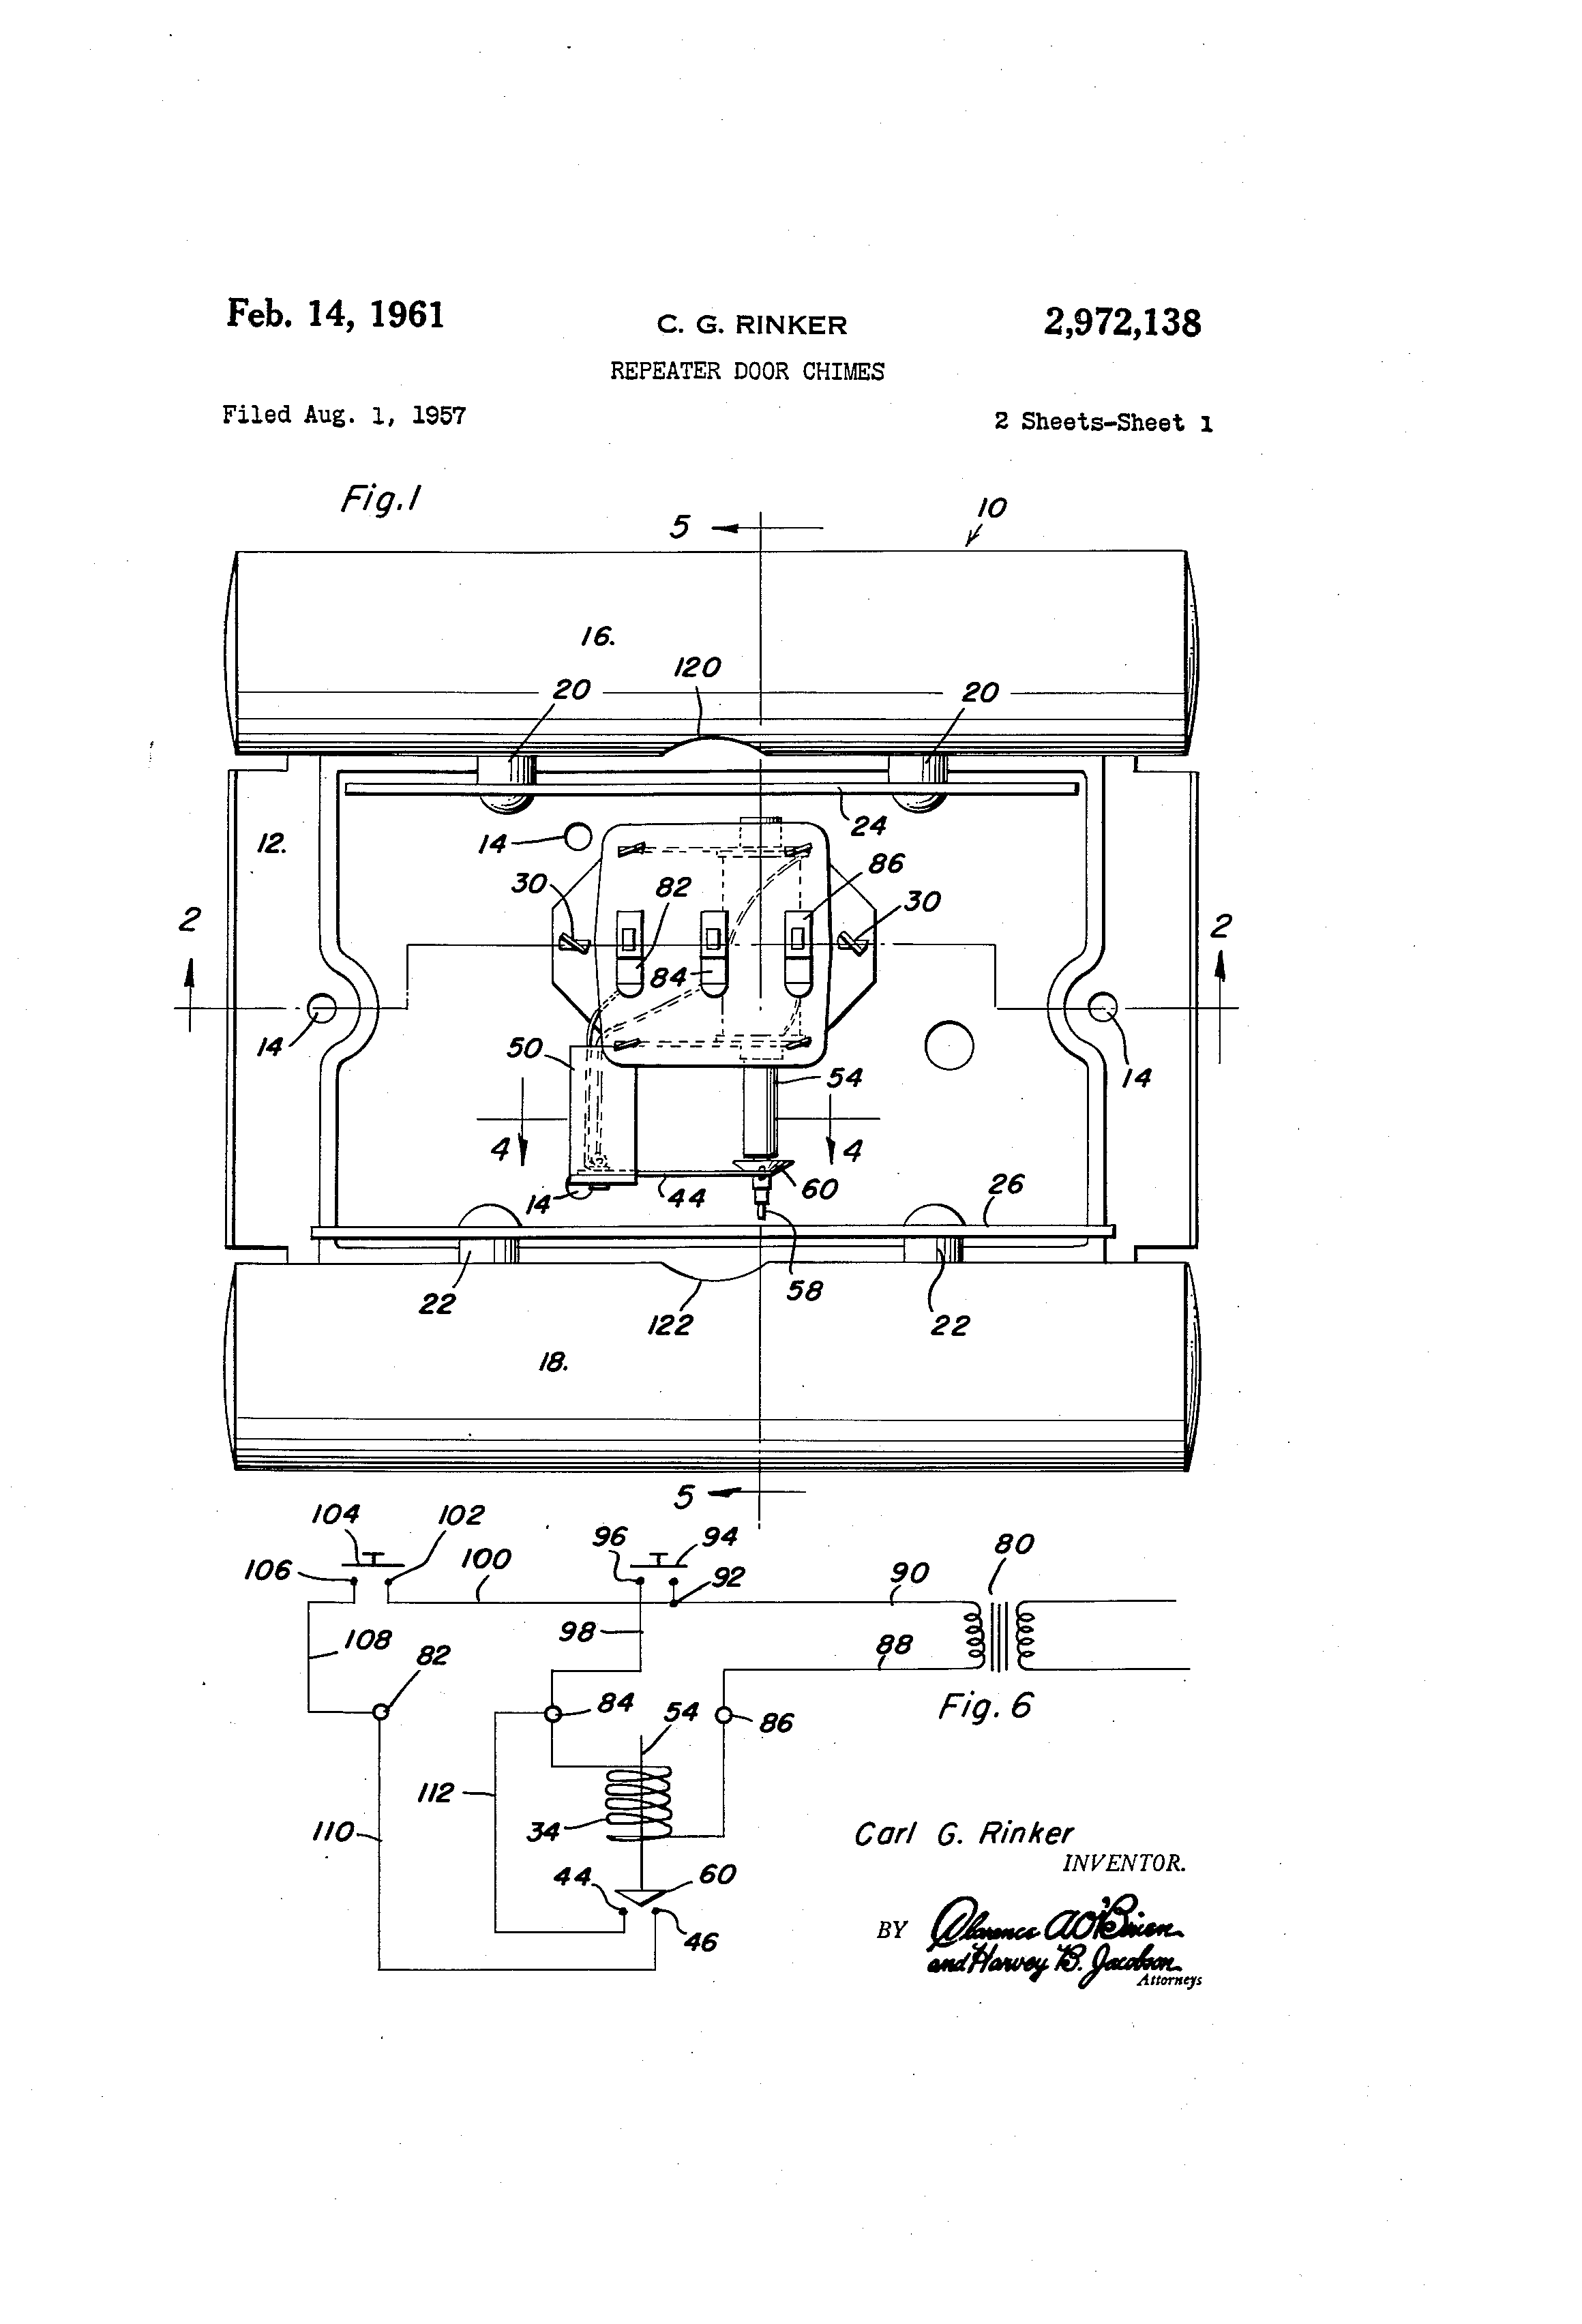 Home; Friedland Door Chimes Wiring Diagram. Patent Drawing